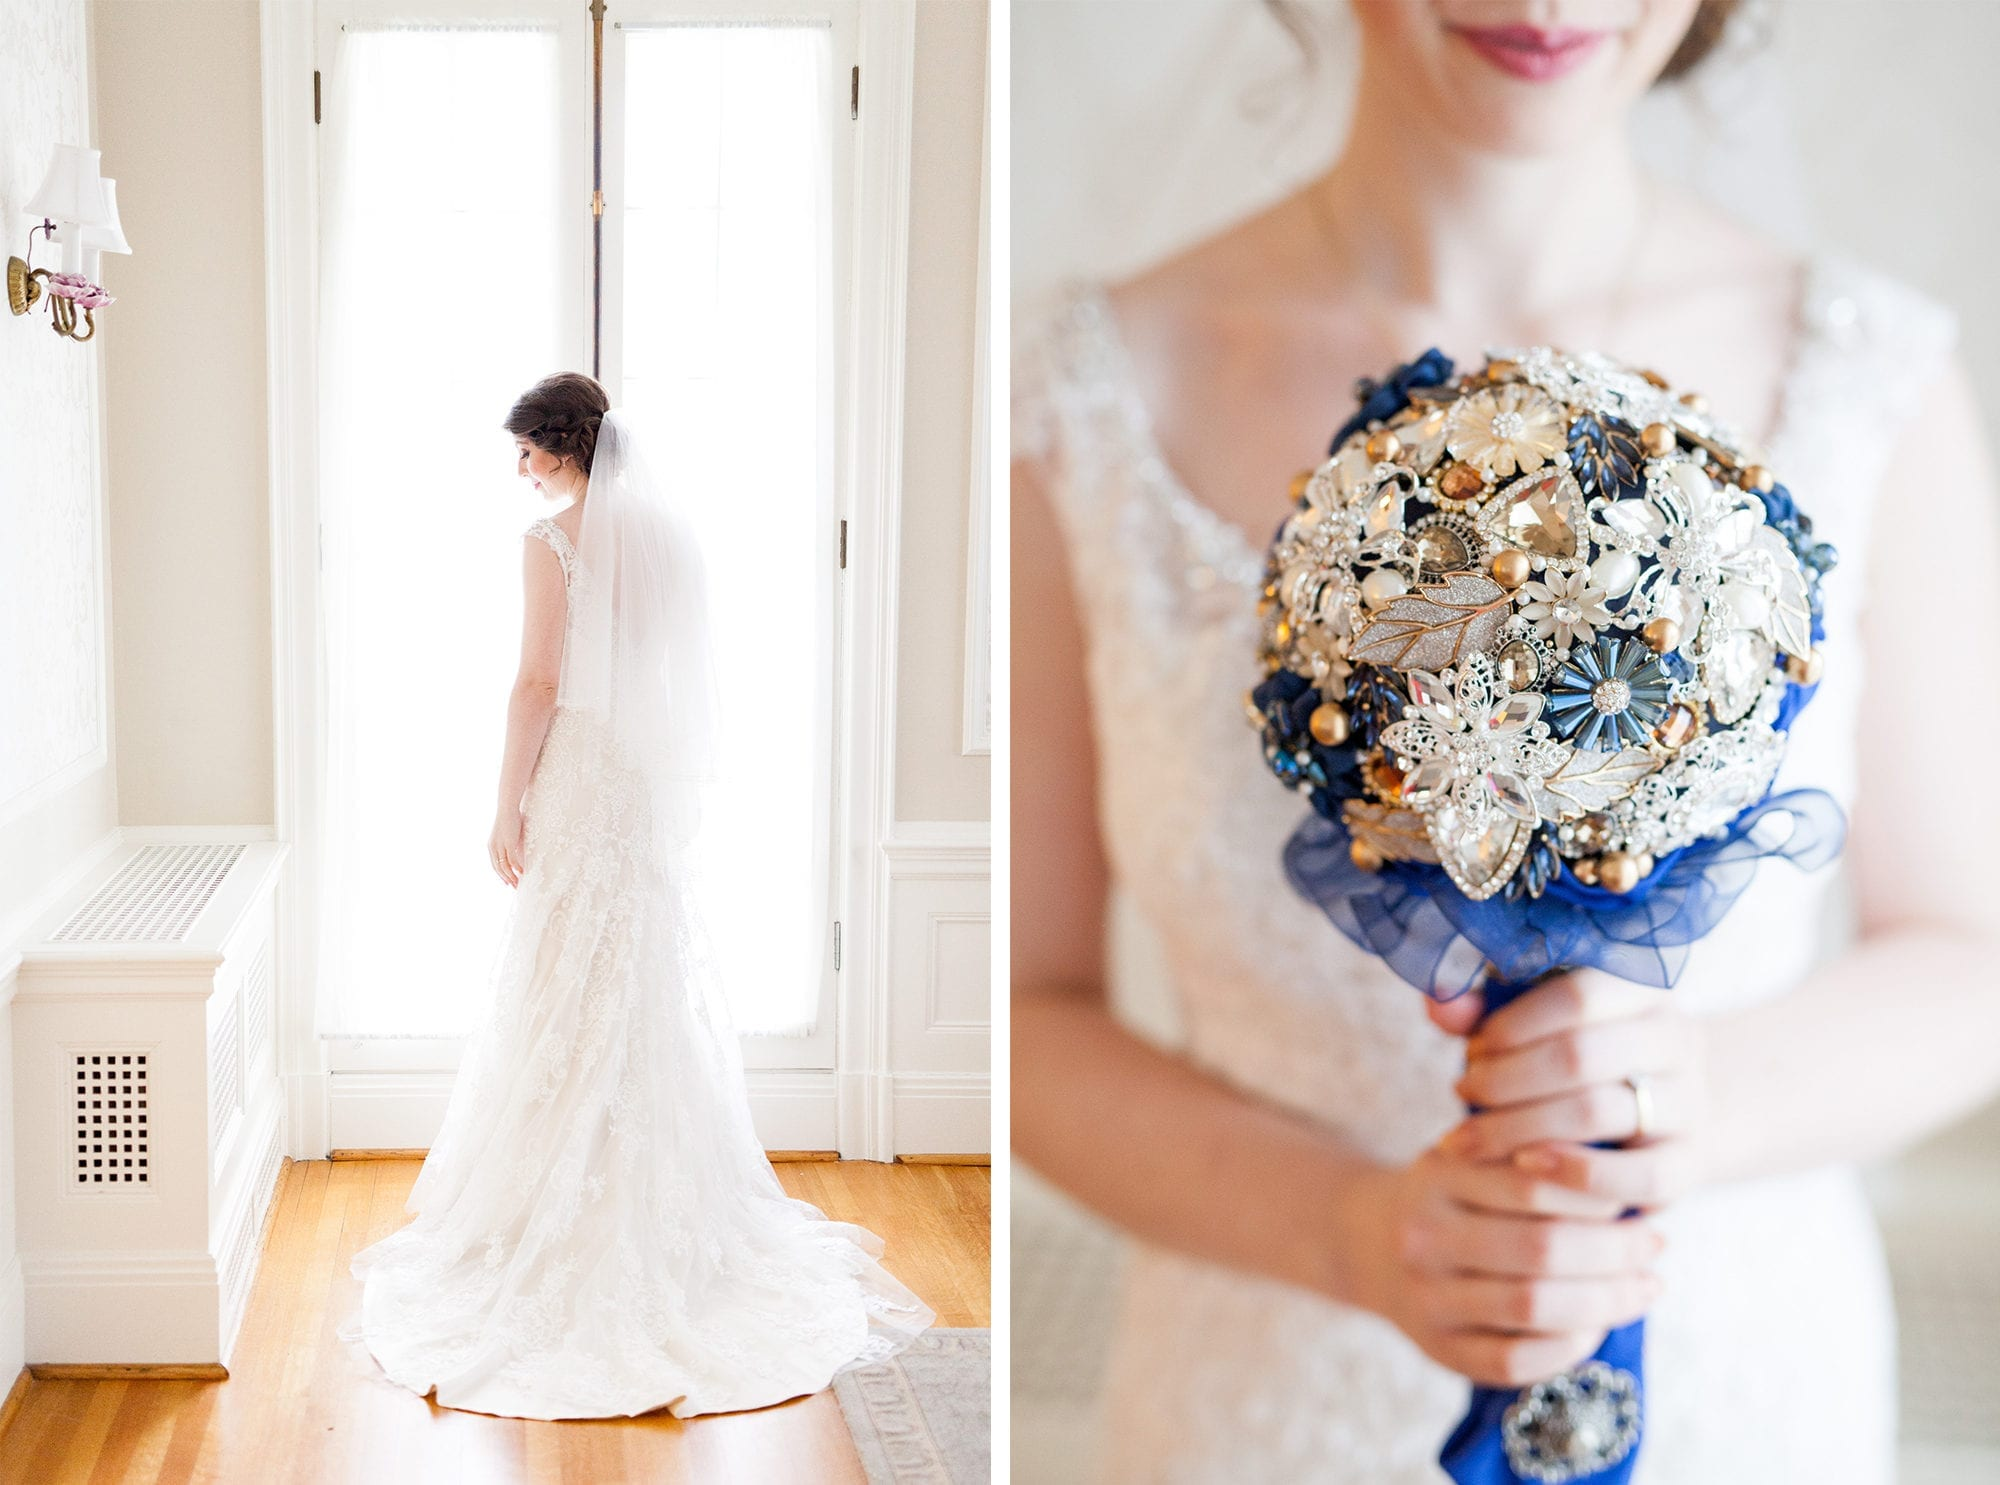 Bride Dress Heintzman House Wedding Zsuzsi Pal Photography